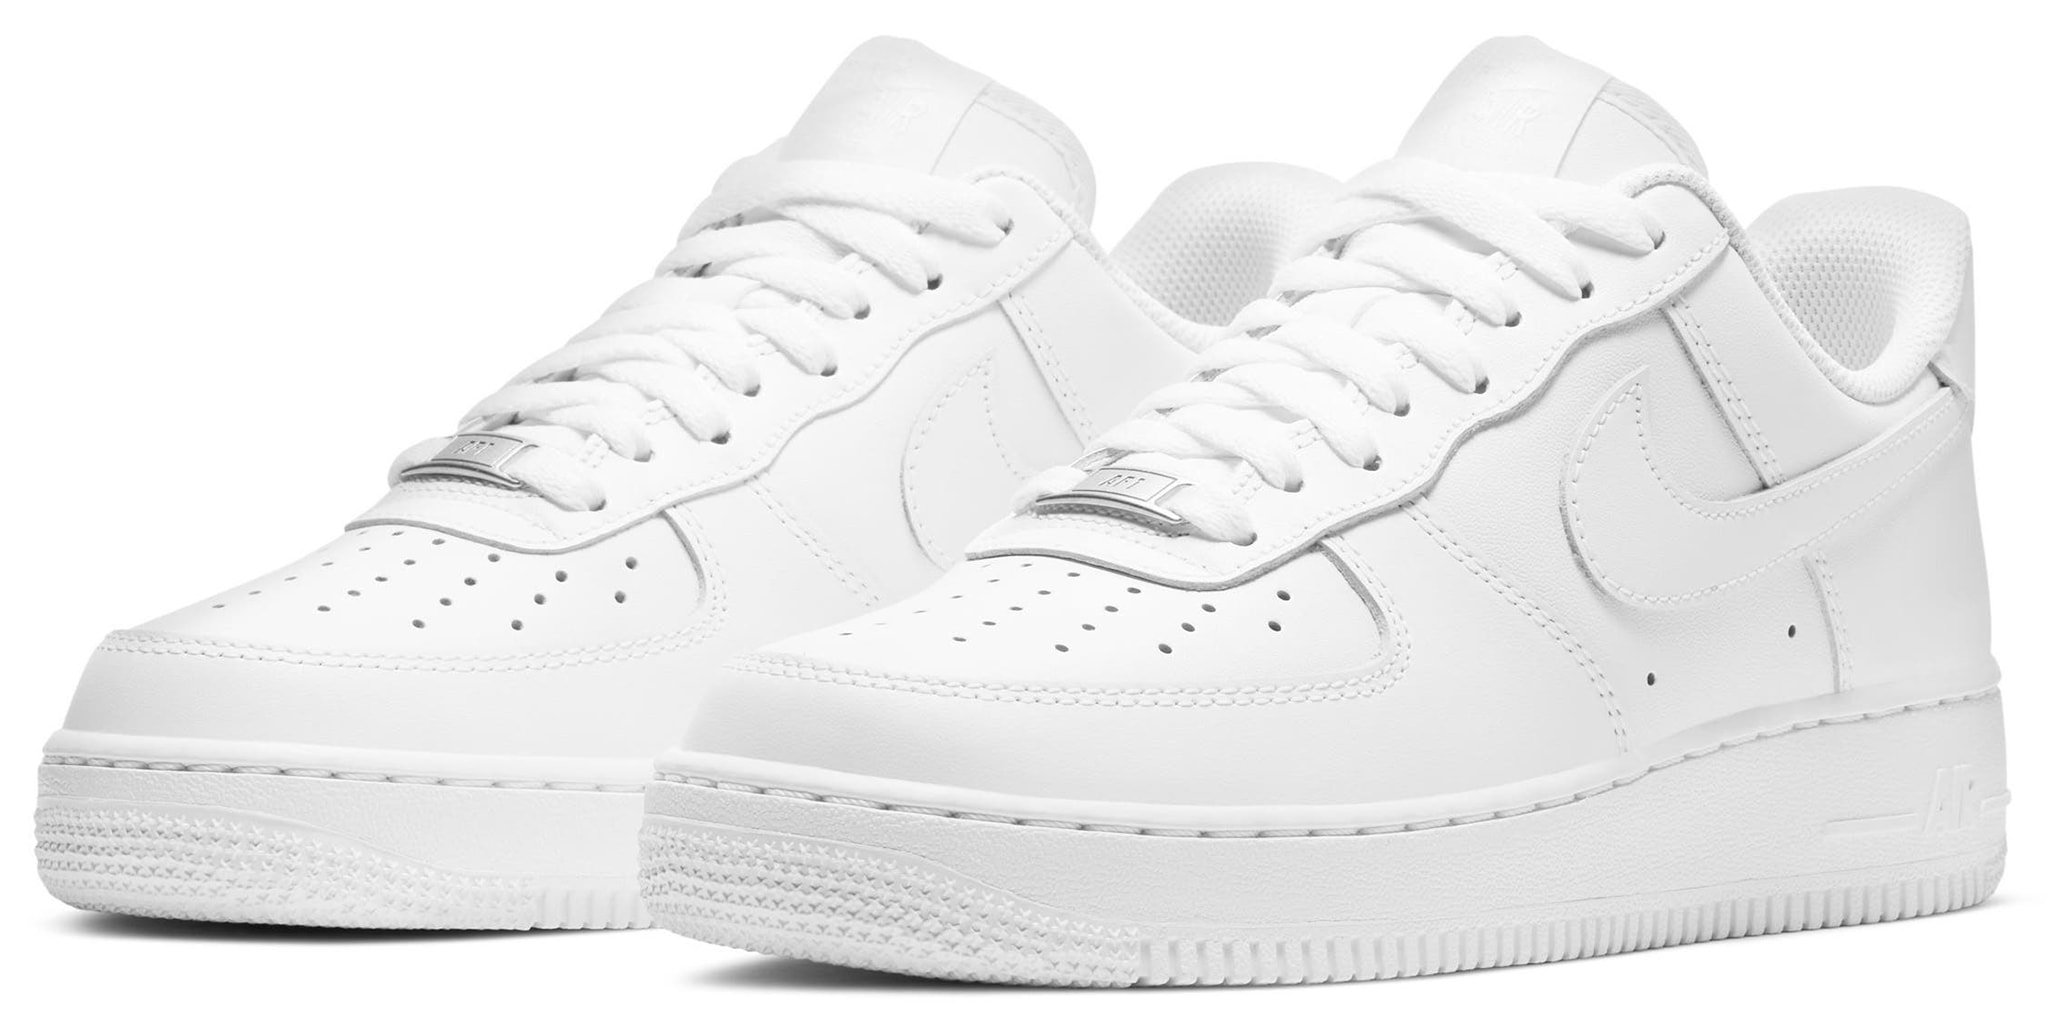 These iconic sneakers have a streamlined minimalist low profile with stitched leather overlays